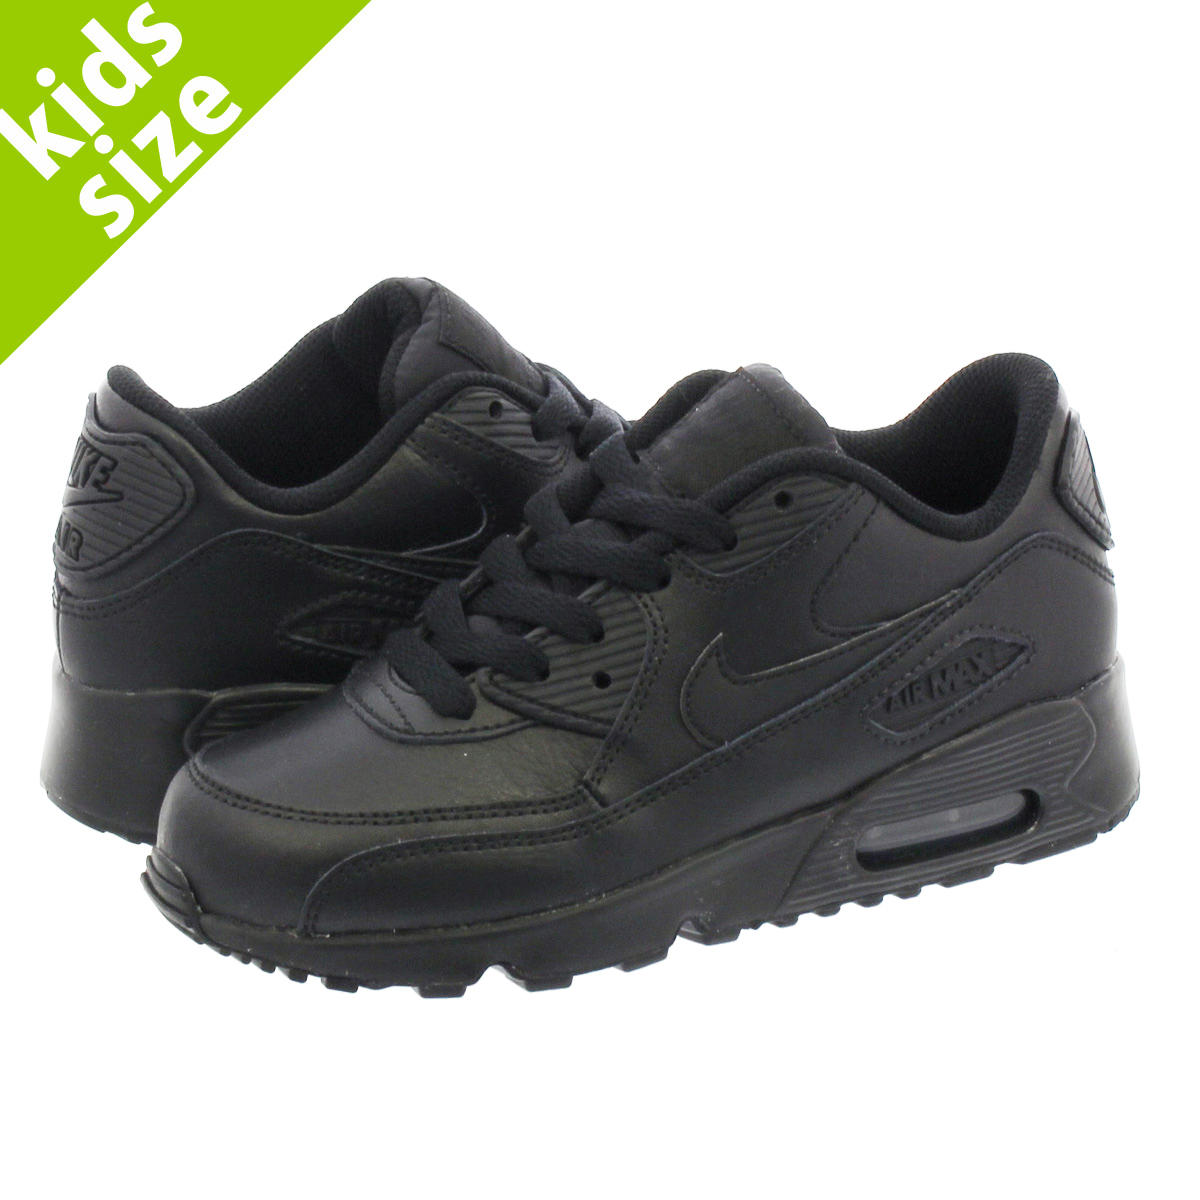 NIKE AIR MAX 90 LTR PS Kie Ney AMAX 90 leather PS BLACKBLACK 833,414 001